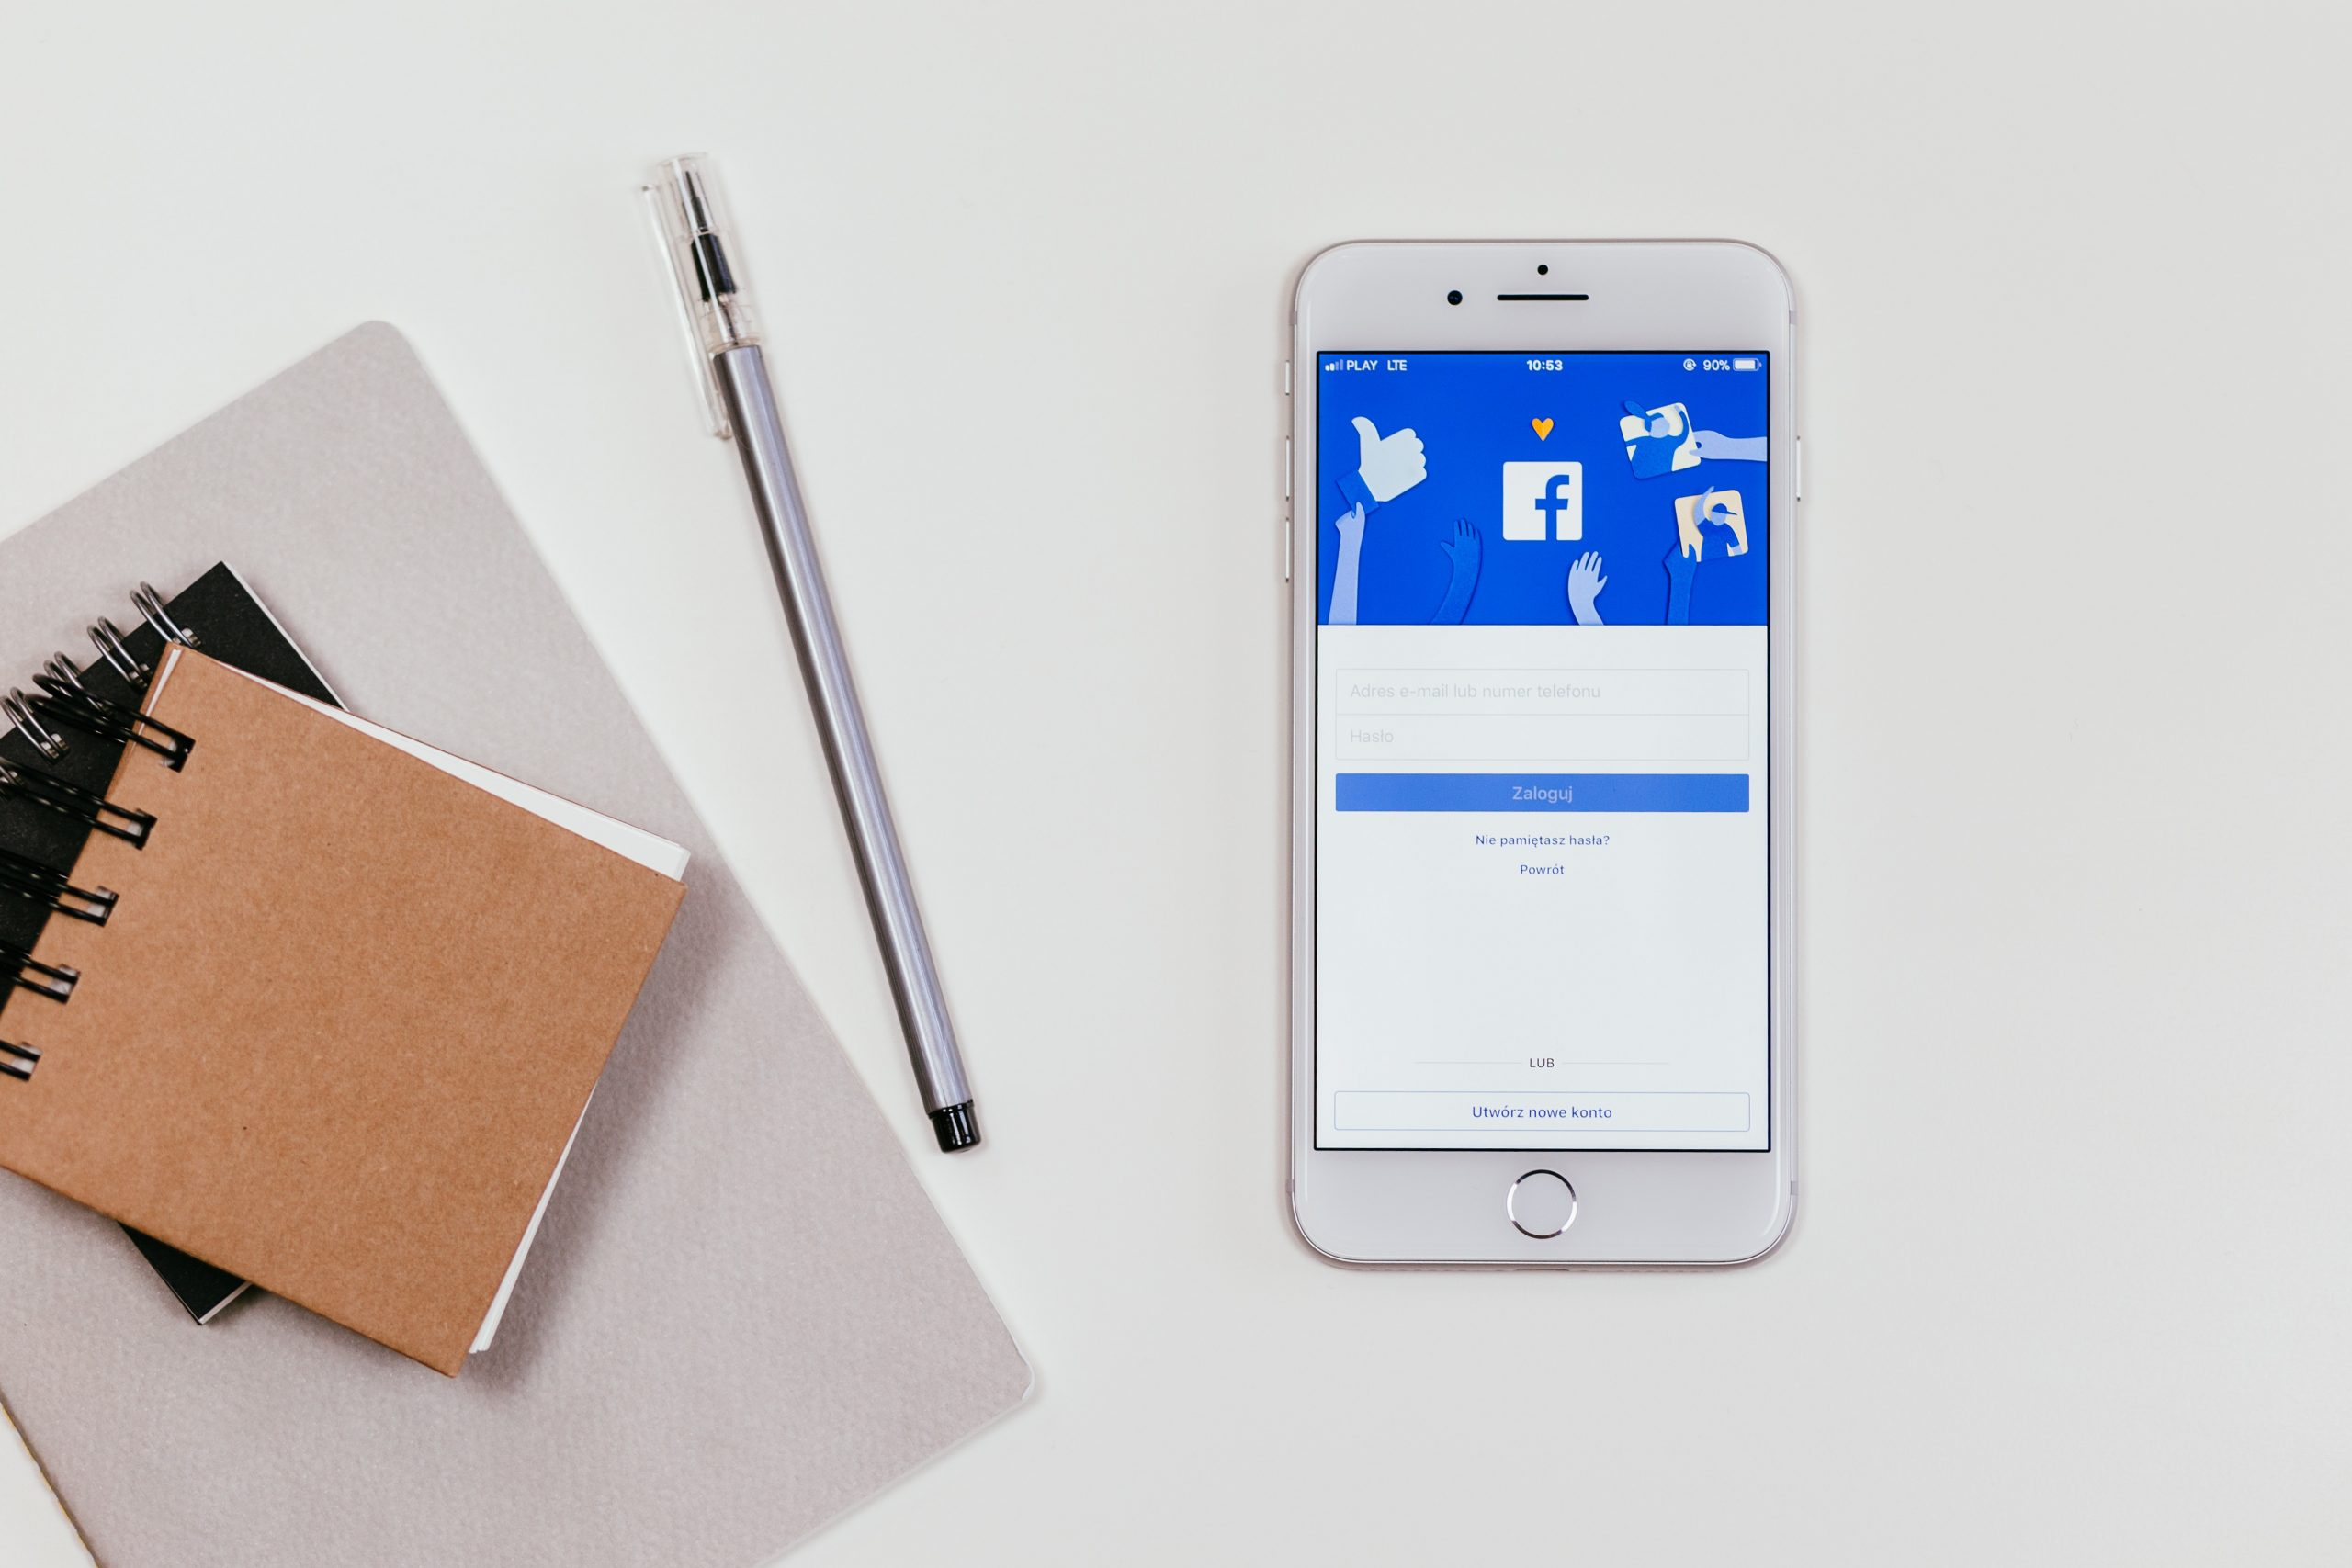 Facebook login page on iphone - pay-per-click advertising